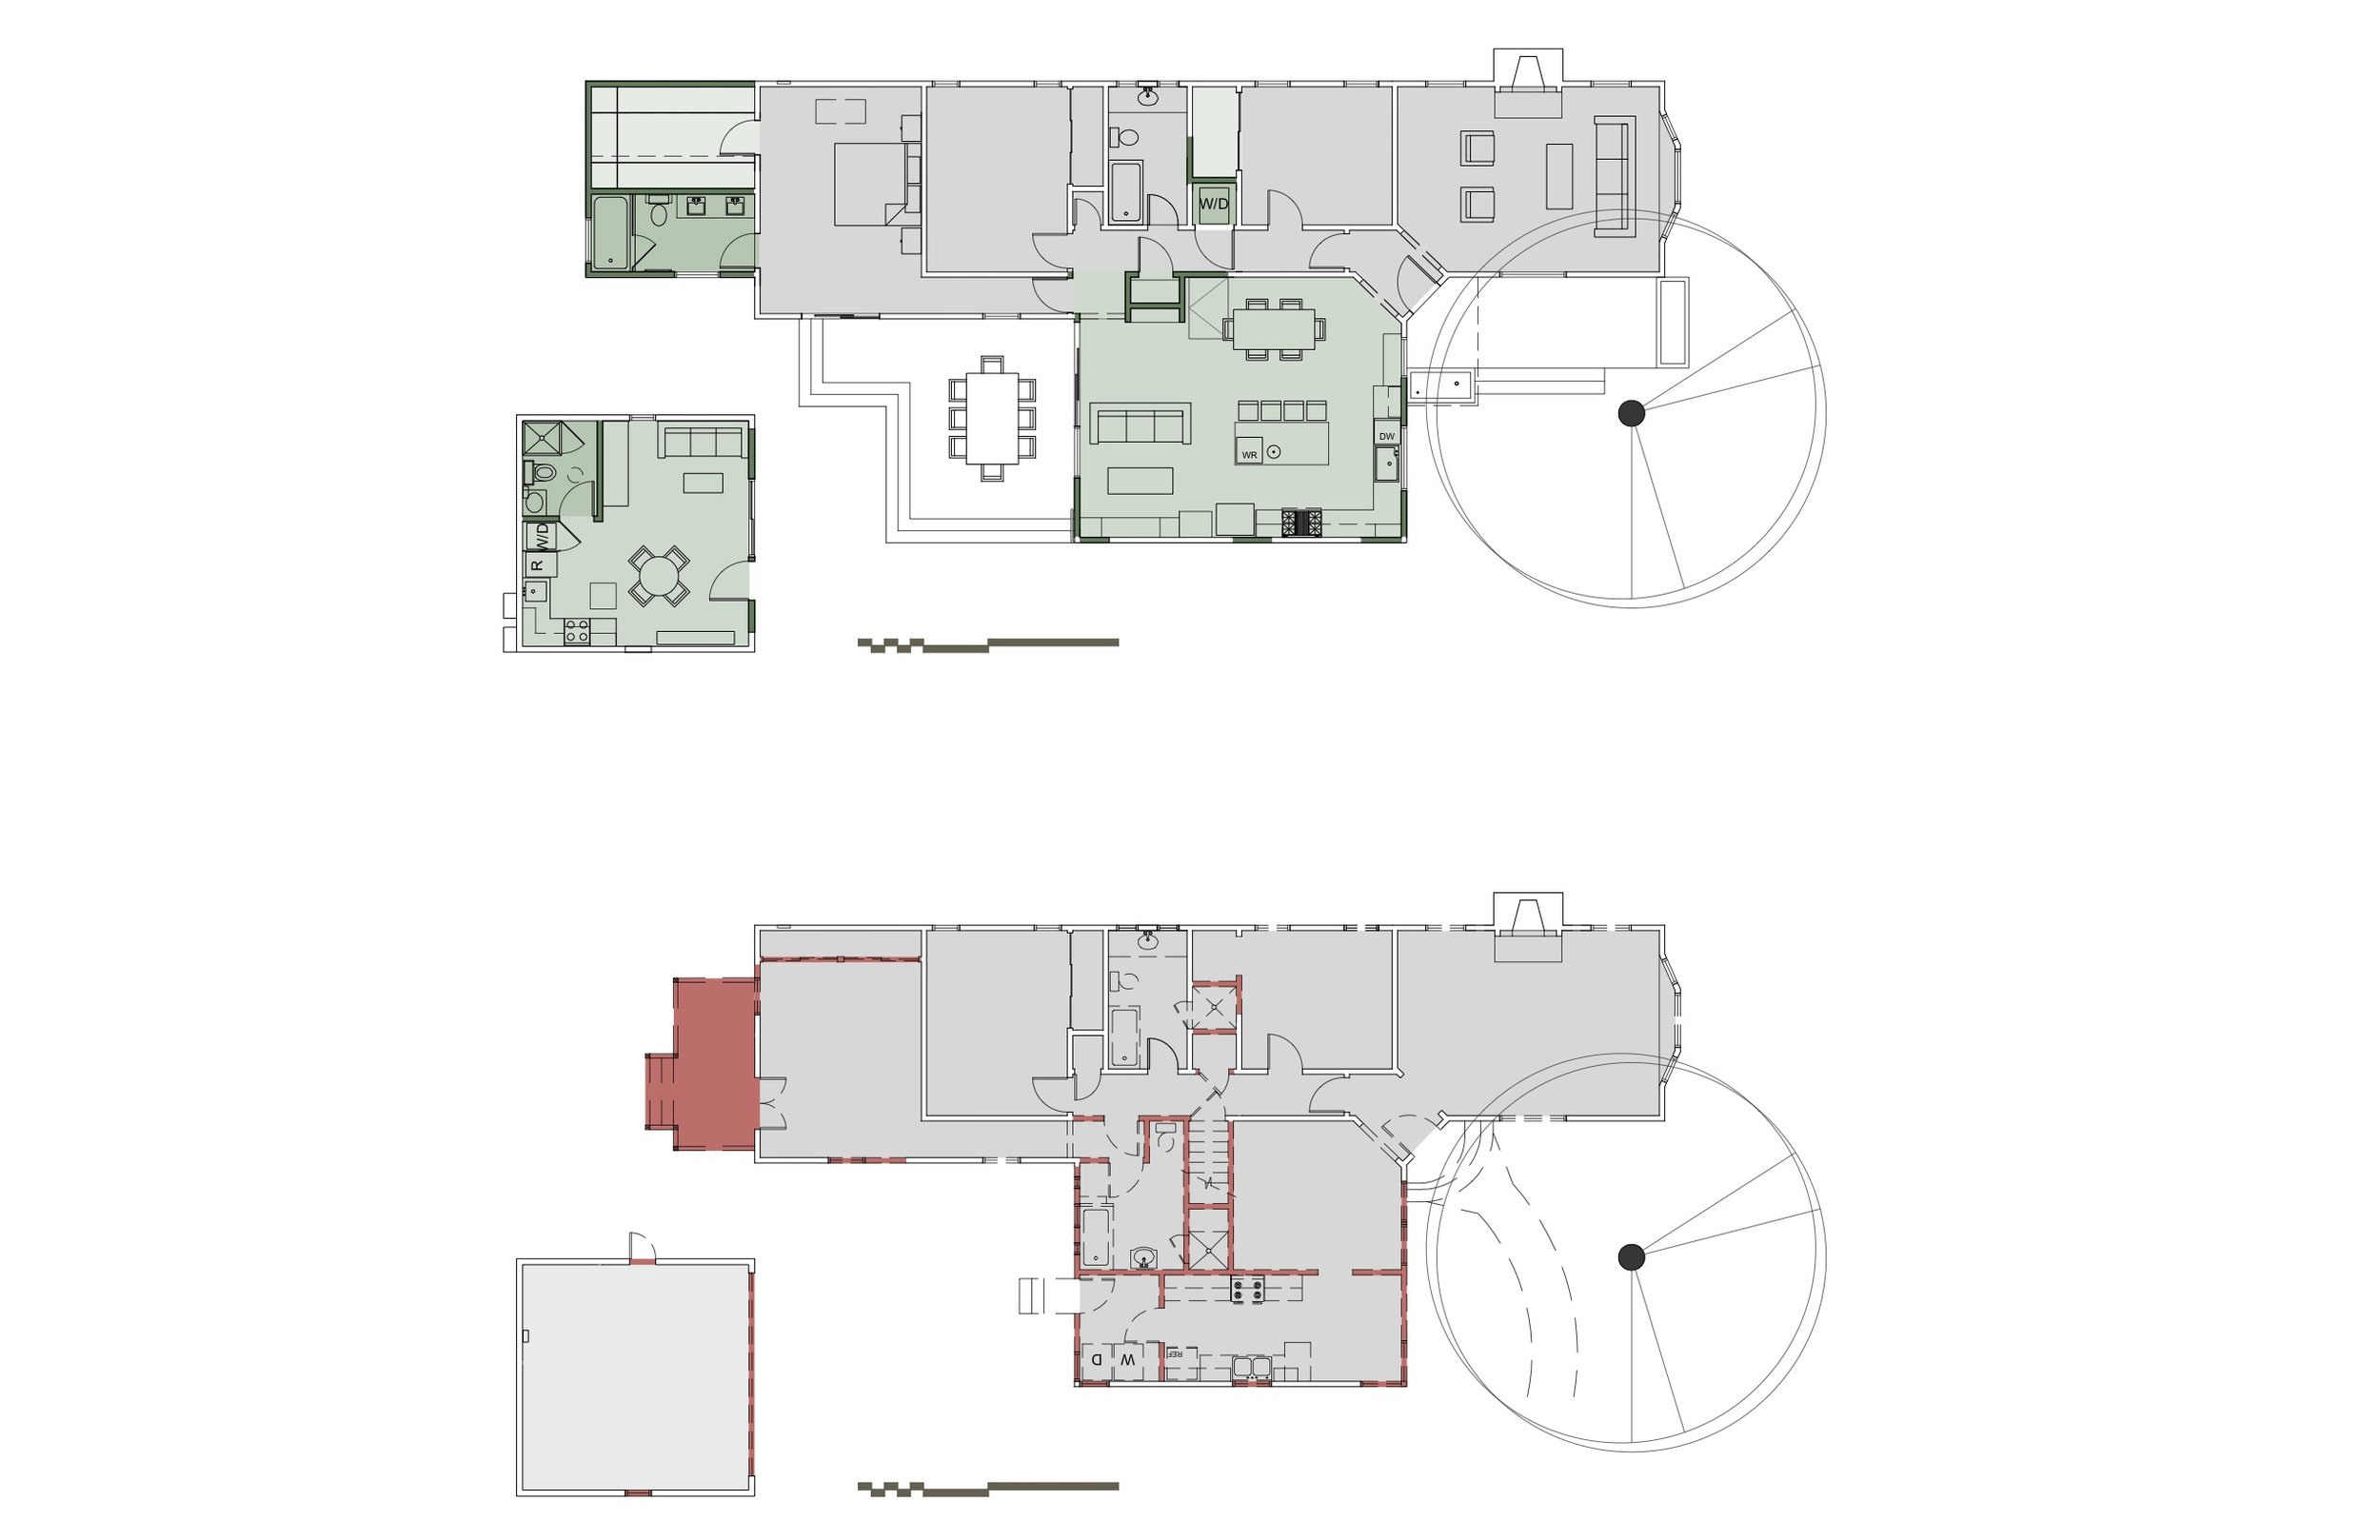 Demolition First Floor Plan (bottom), First Floor Plan (top) - the garage/ADU is in structure at the lower left of both drawings